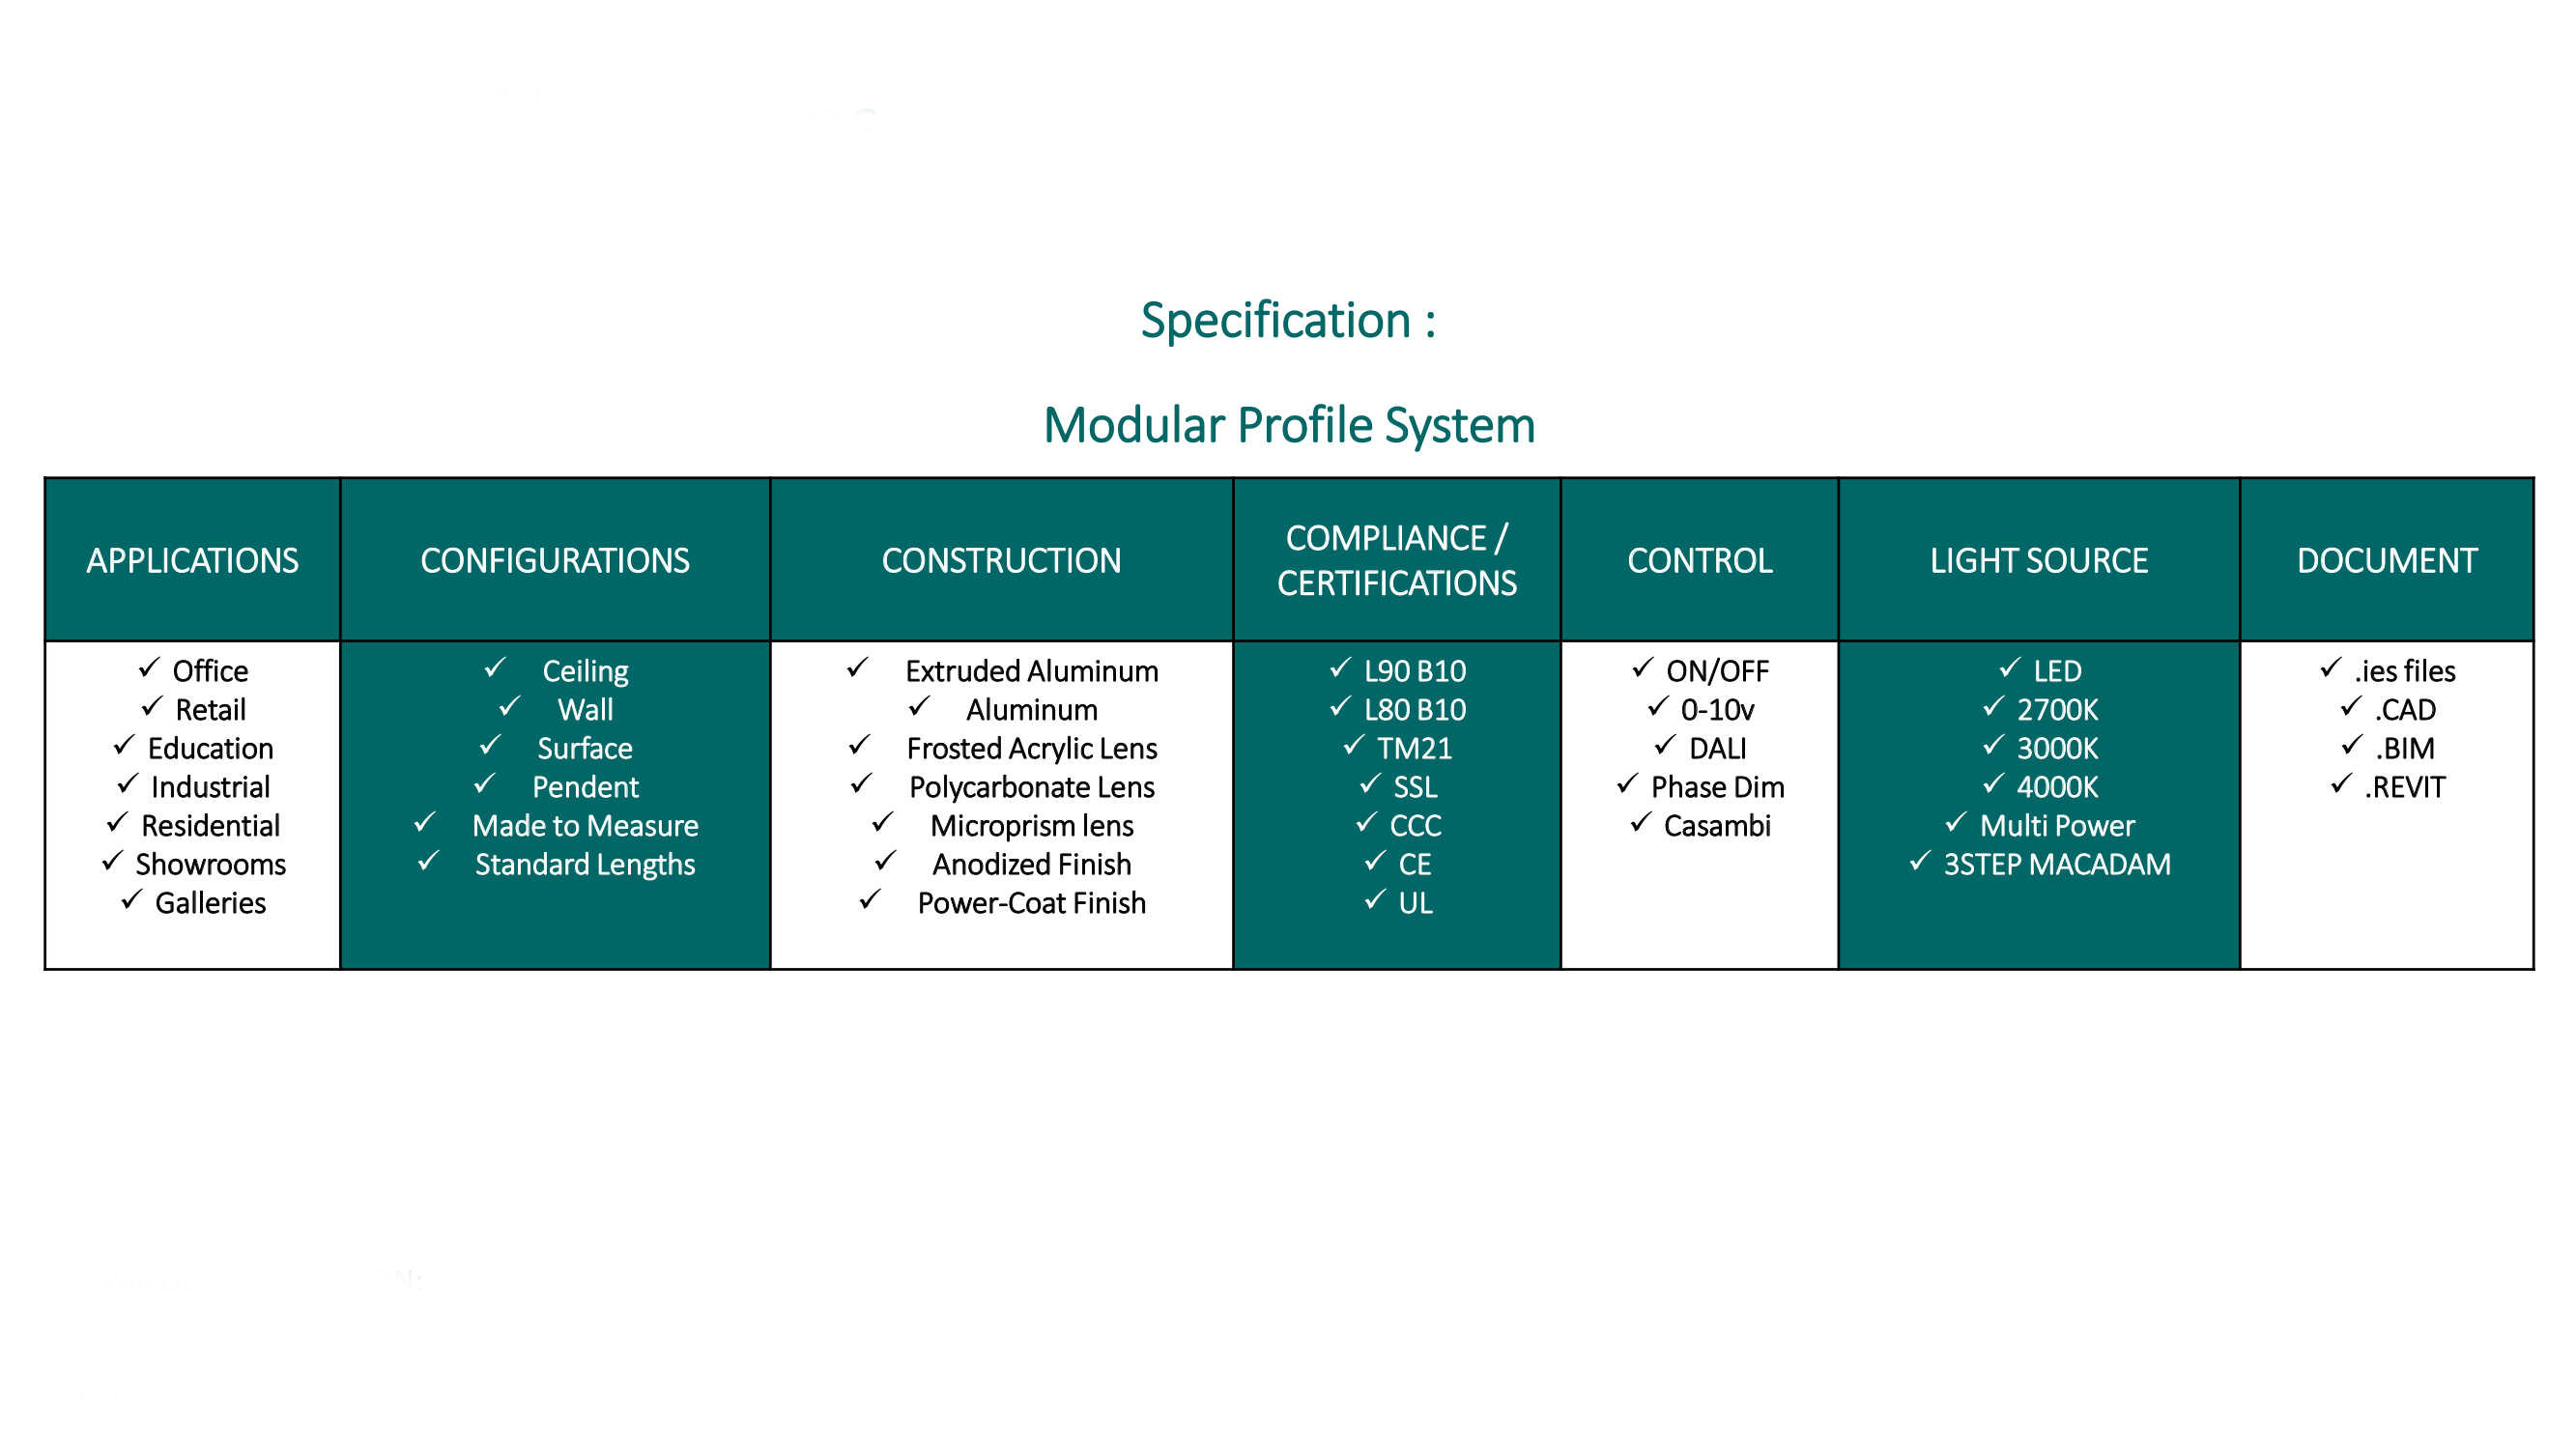 Modular Profile System Specification Table Devar